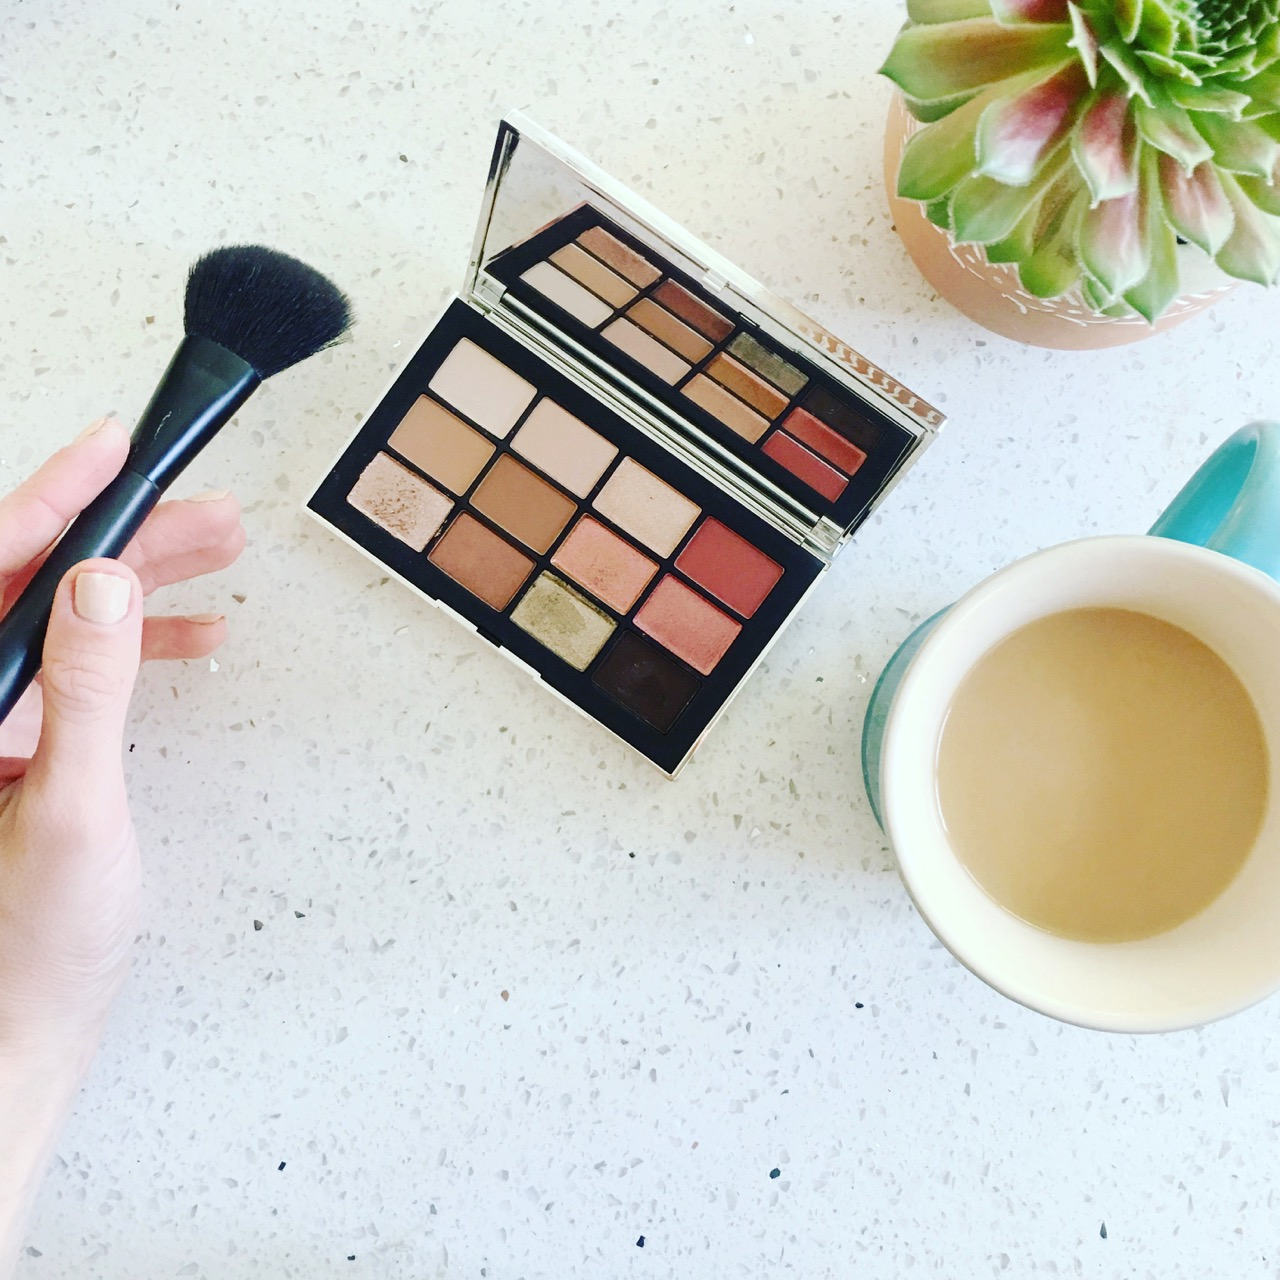 the NARS wanted palette for eyeshadow